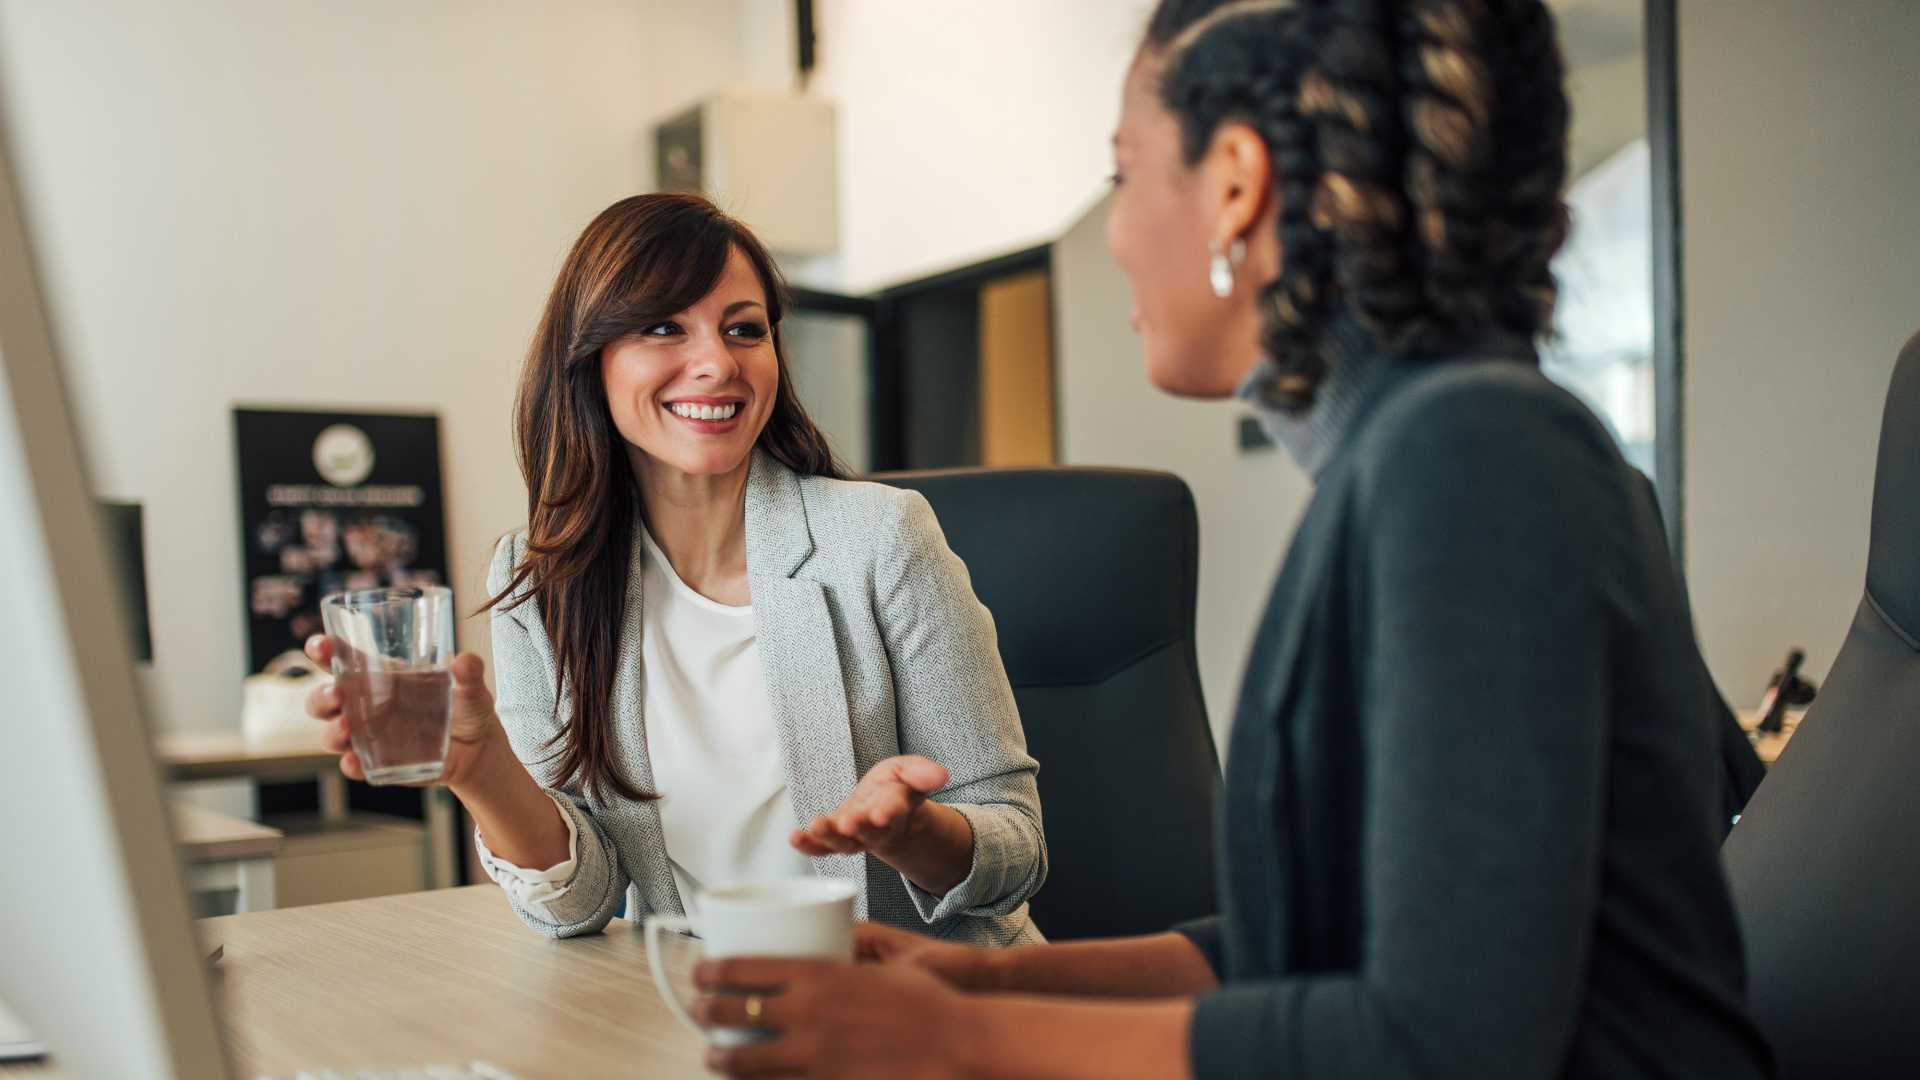 Mentoring: A New Way to Look at Performance Management